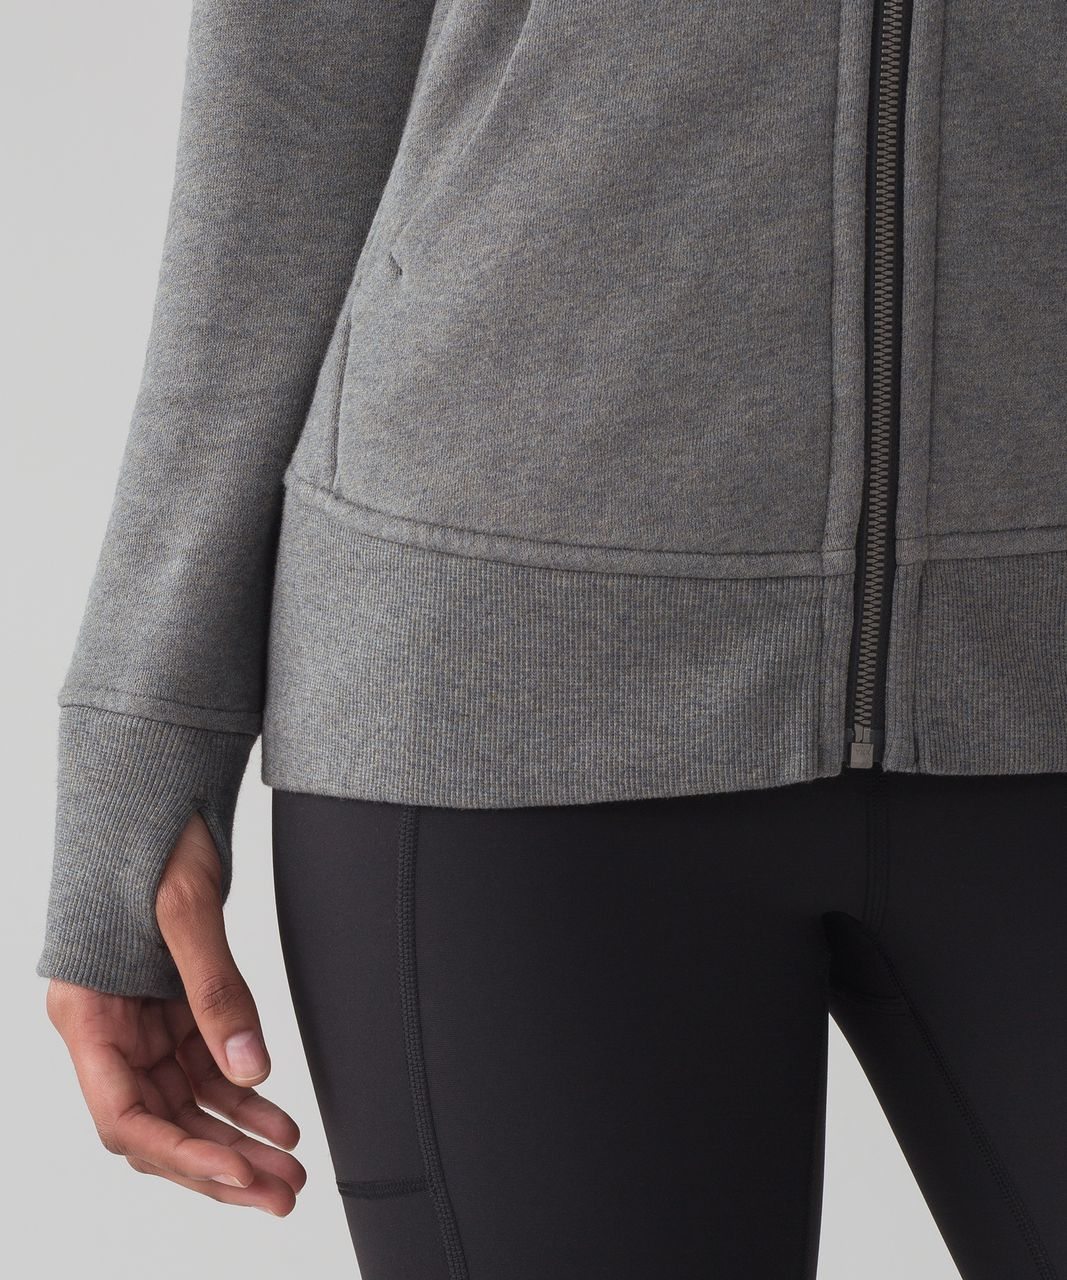 Lululemon Scuba Hoodie *Light Cotton Fleece - Heathered Speckled Earth